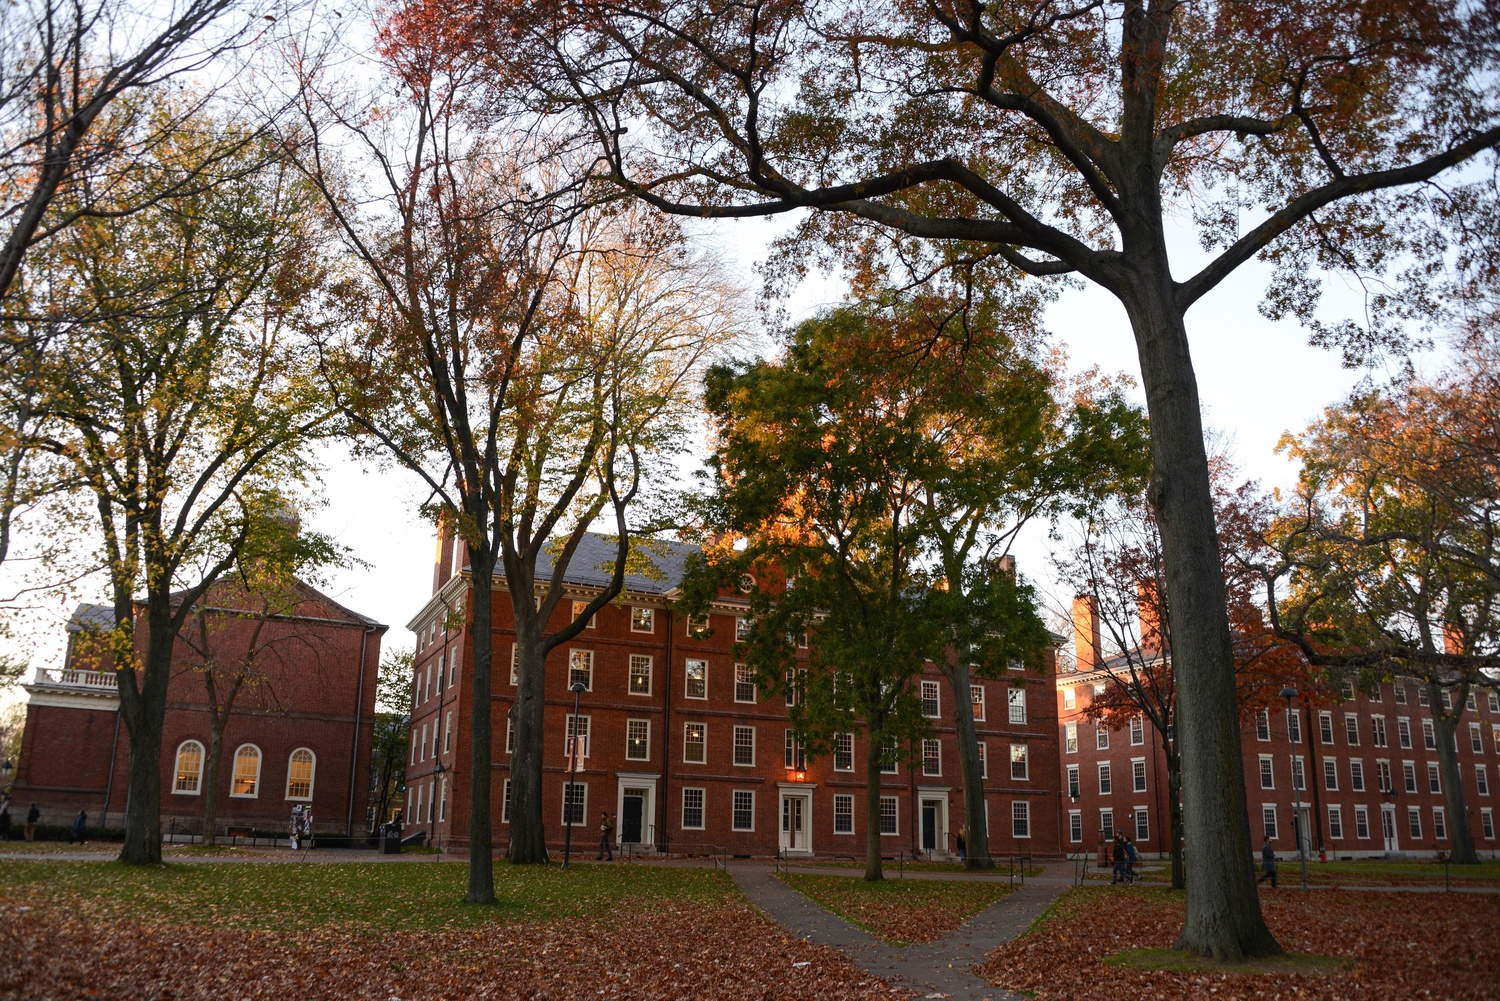 Autumn in Harvard Yard.